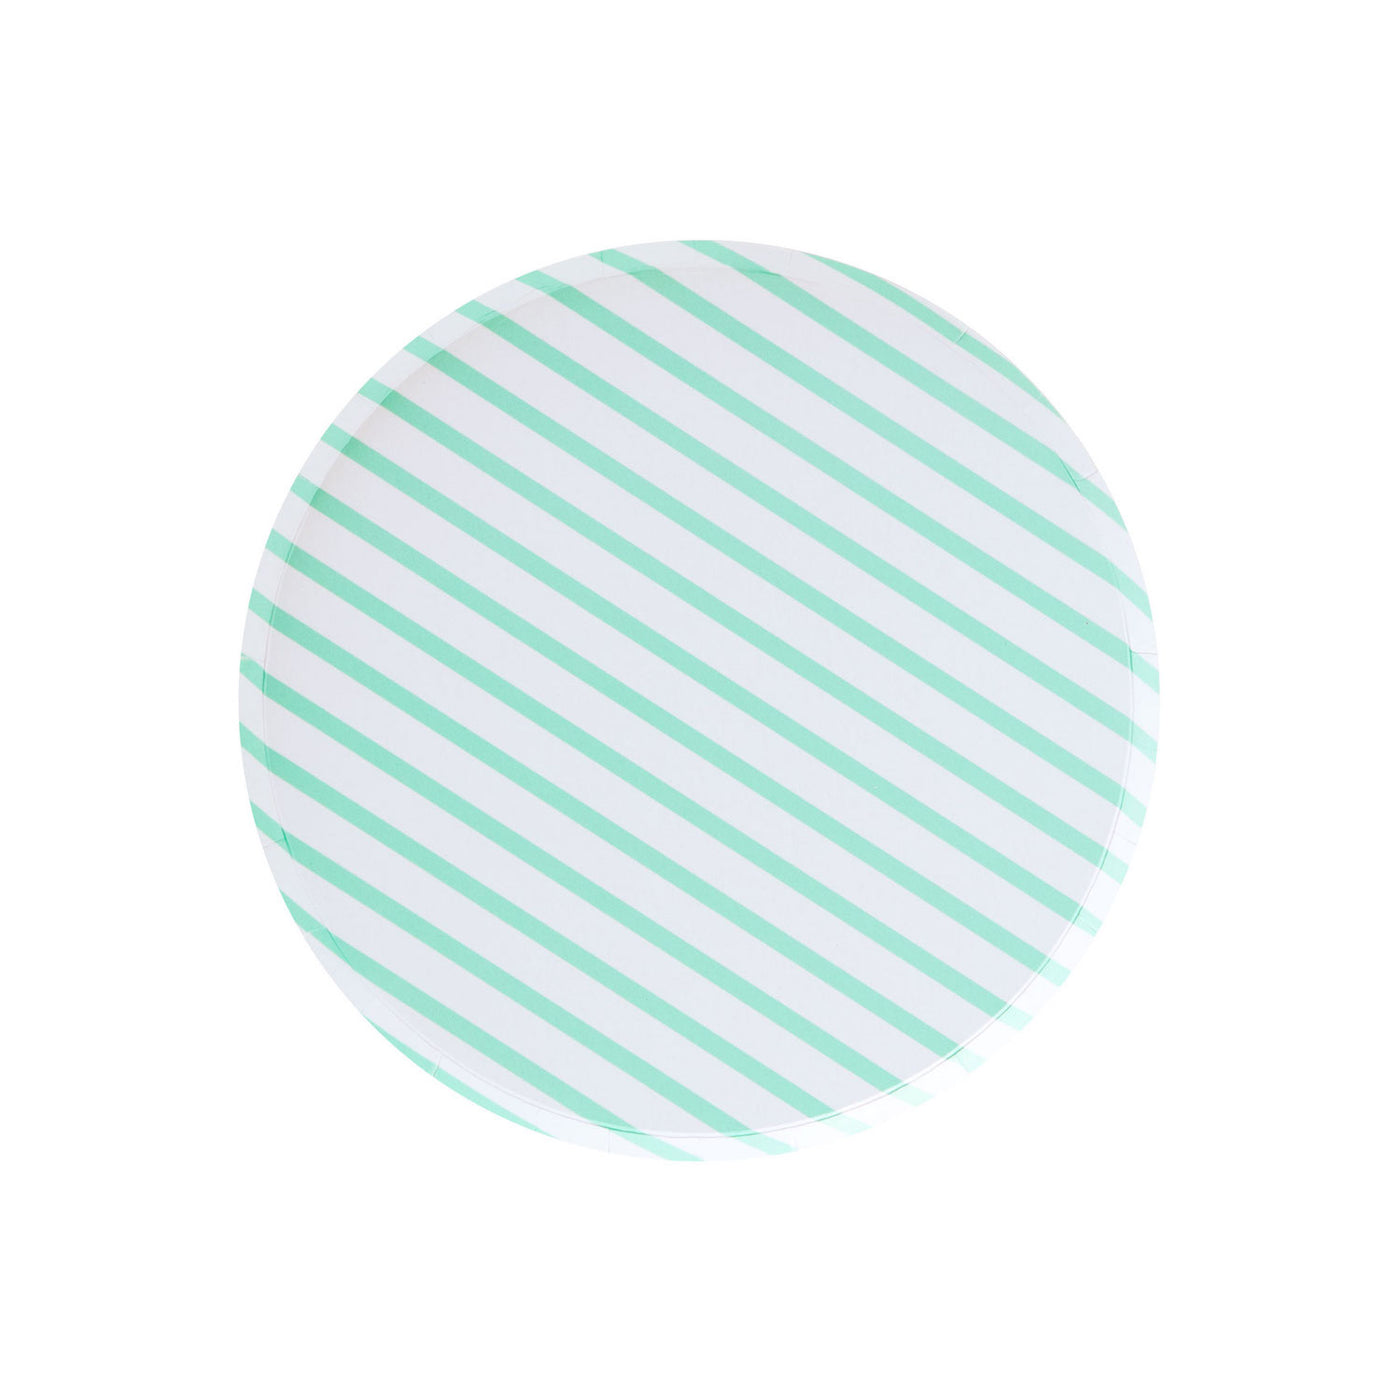 Mint Striped Party Plates - Witty Bash